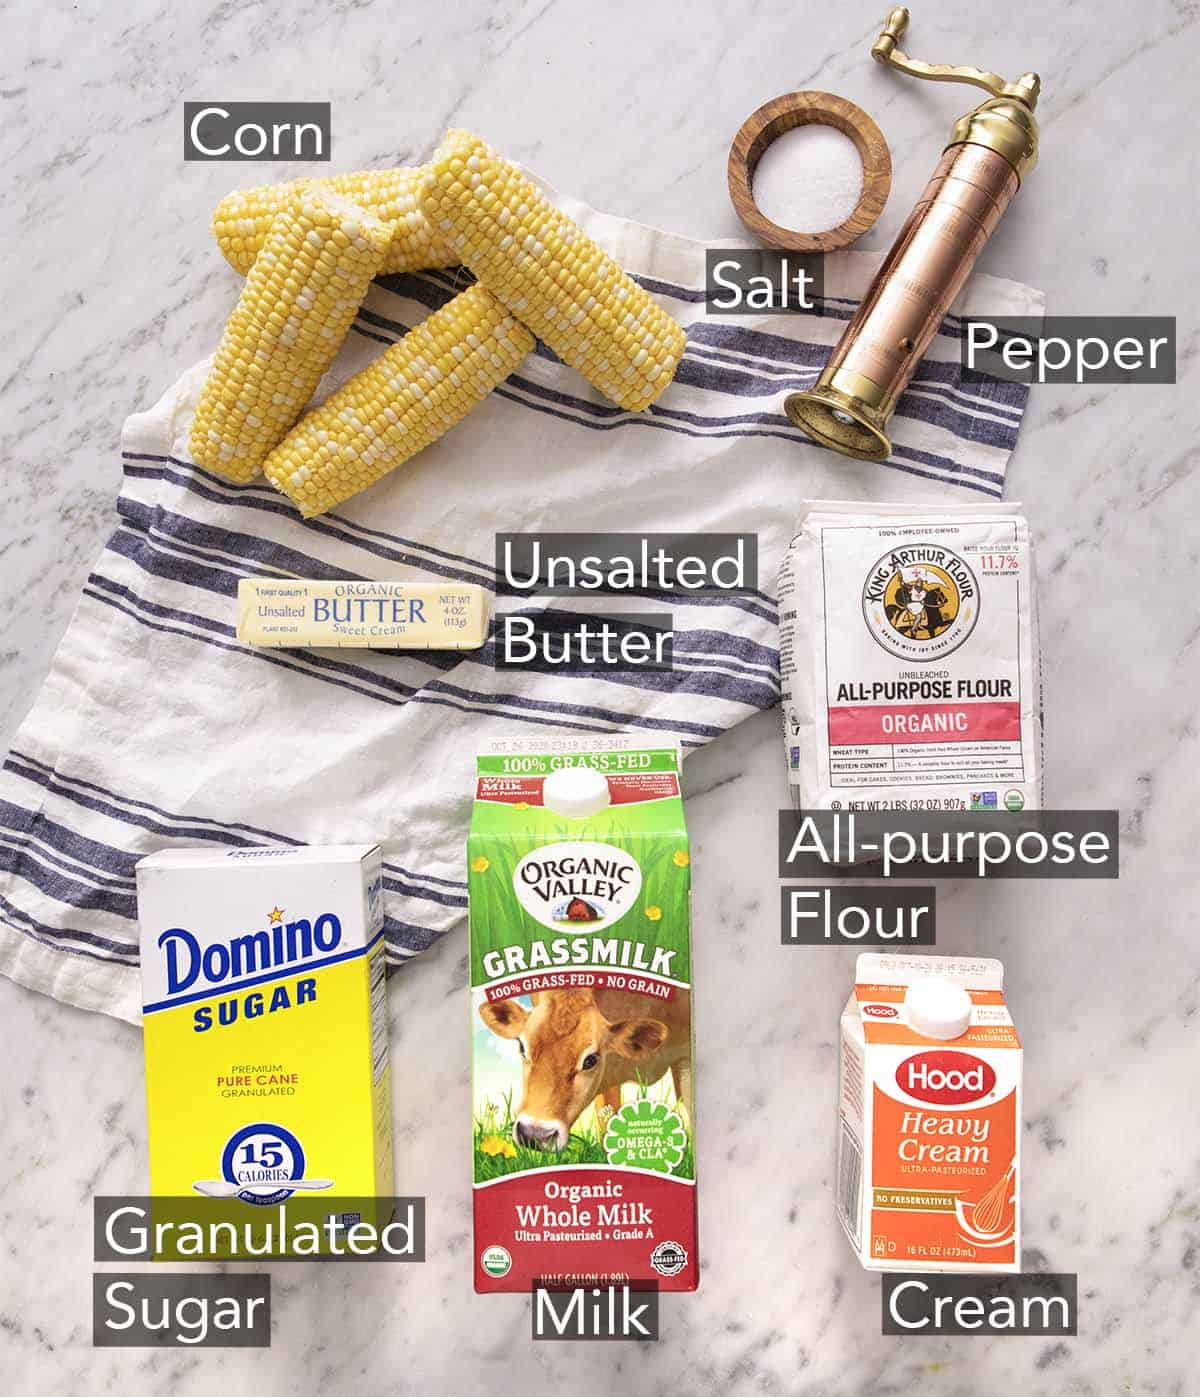 Ingredients to make creamed corn laying on a striped napkin.